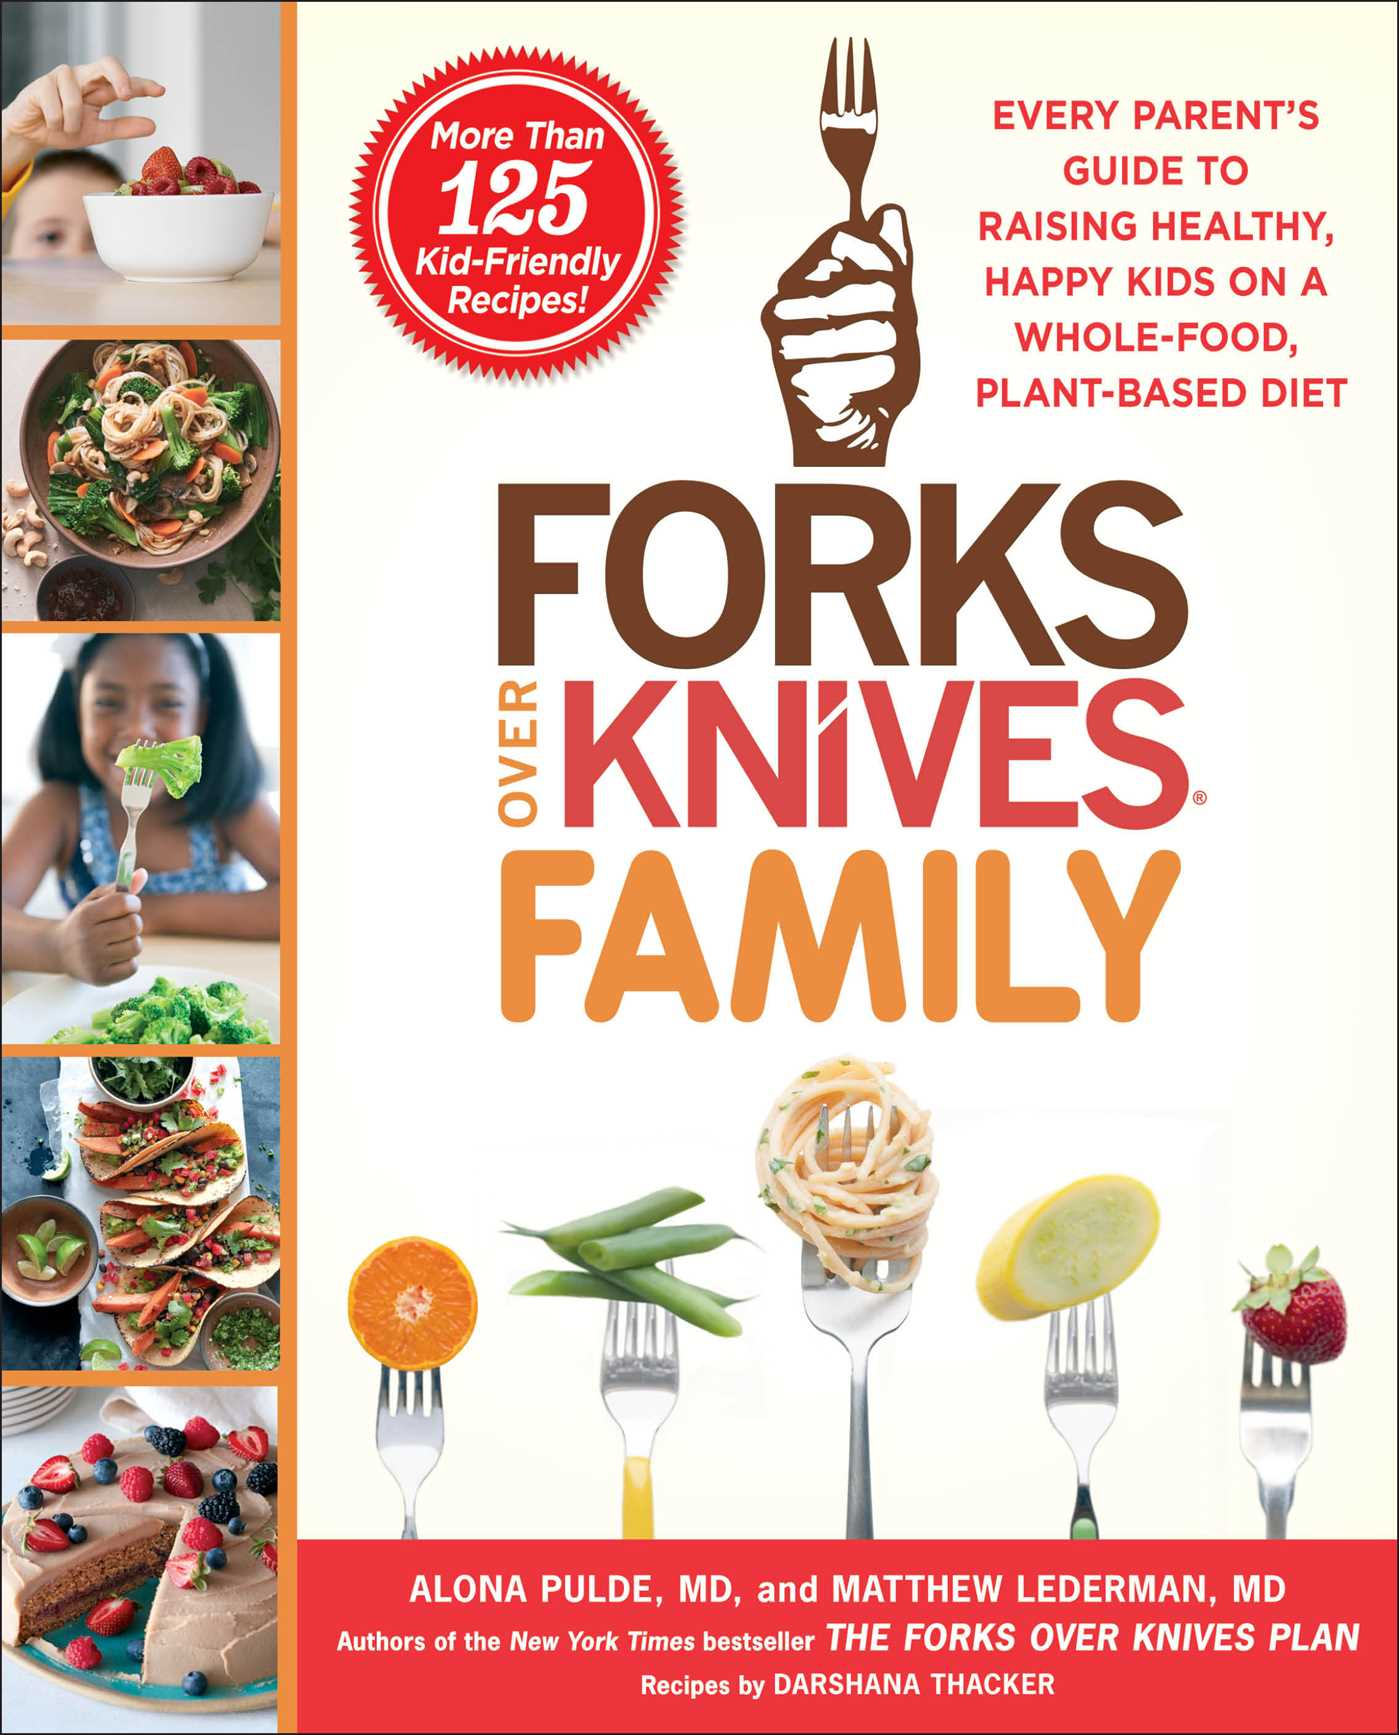 Forks over knives family 9781476753324 hr